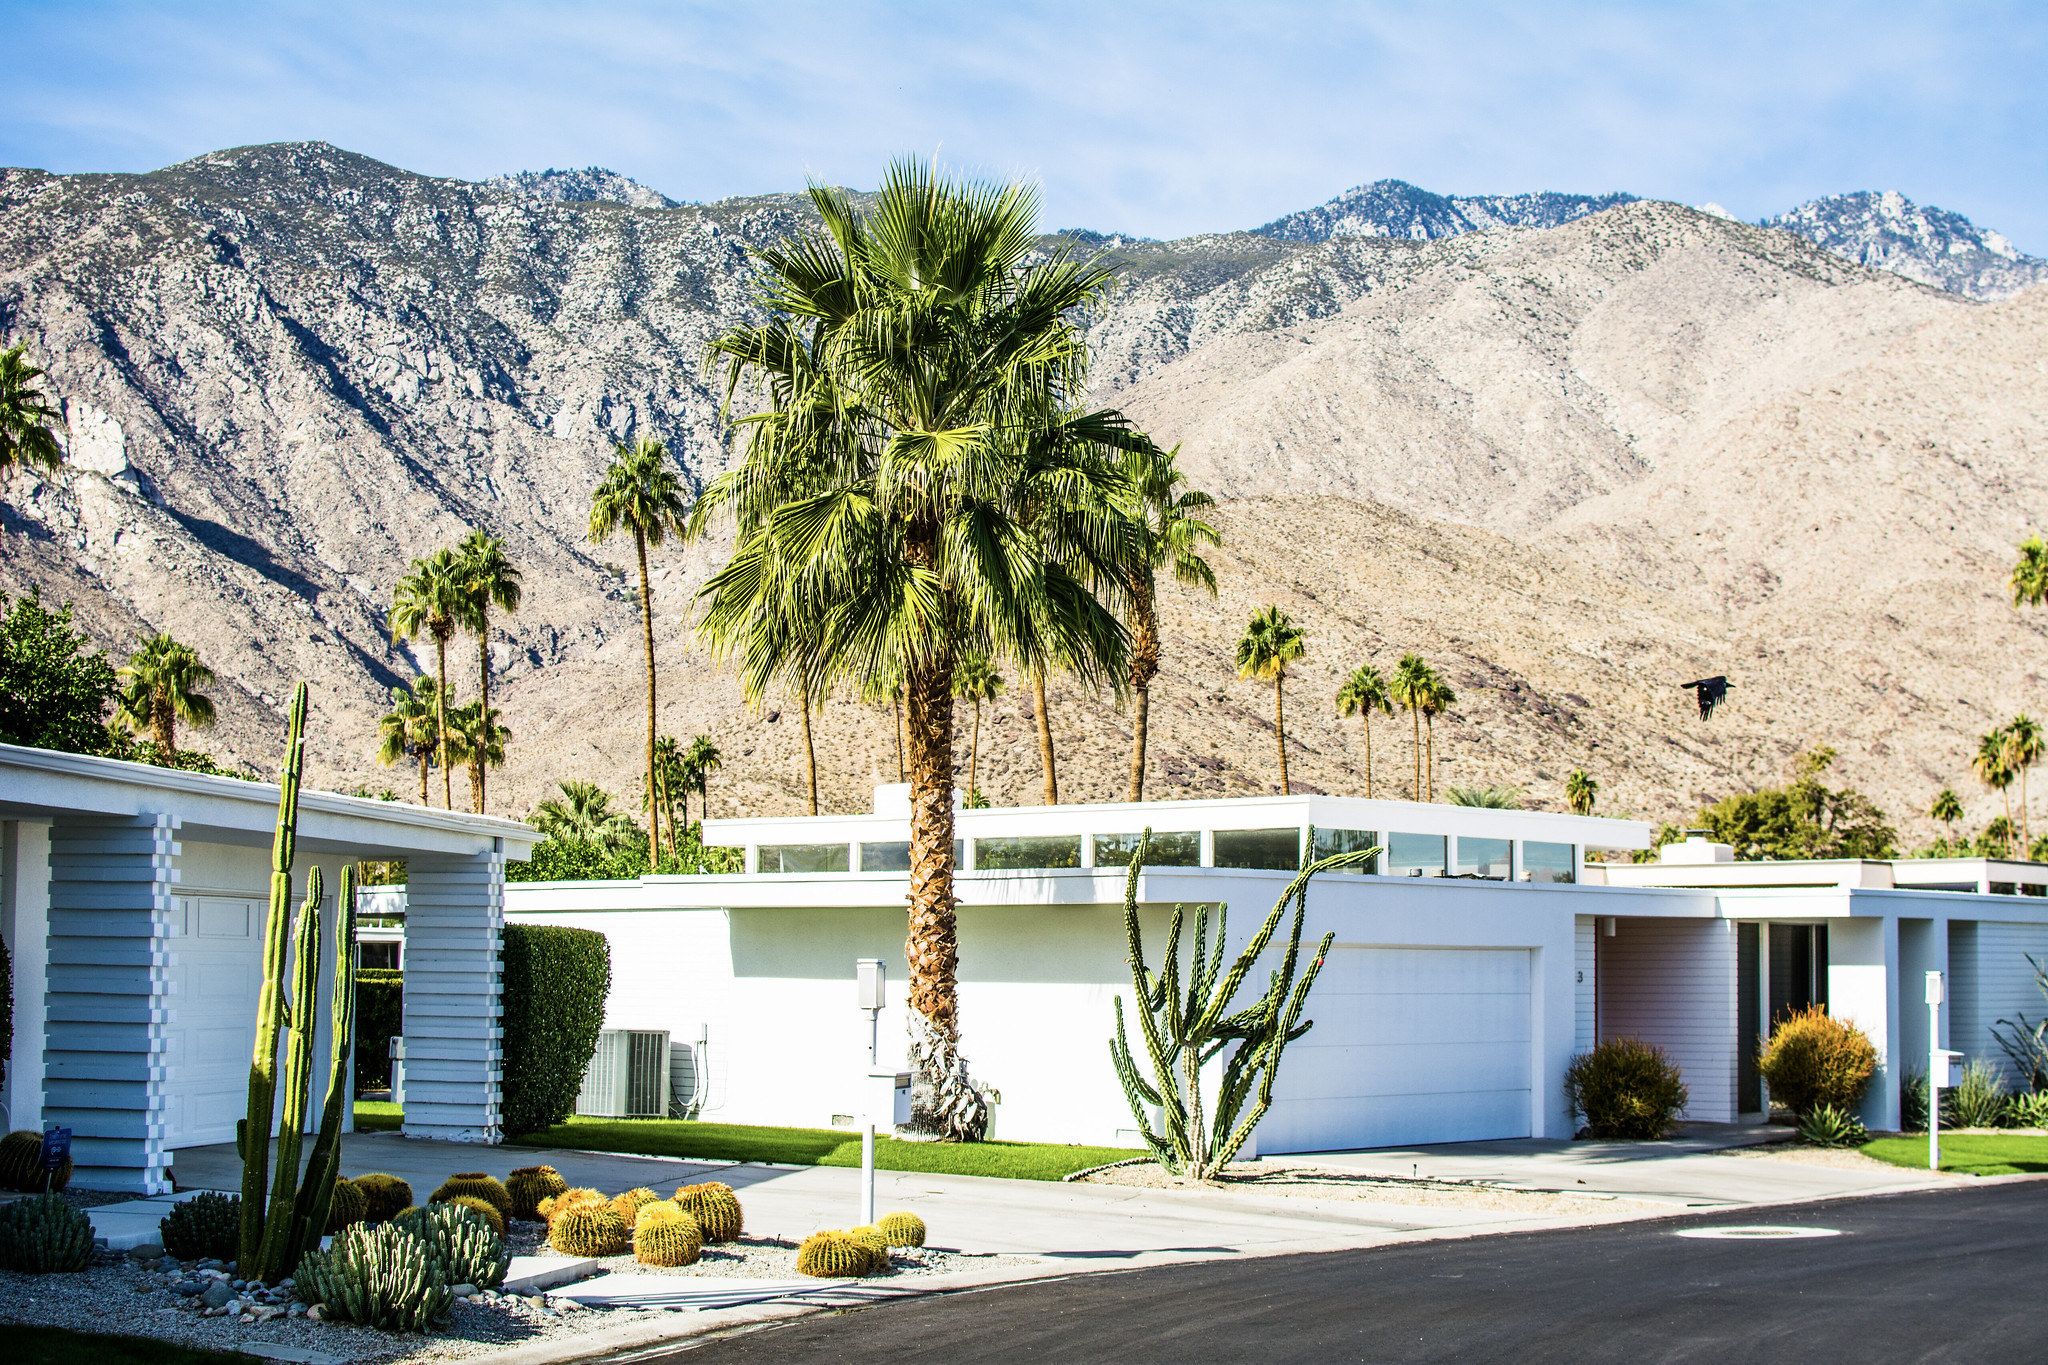 A midcentury modern home under the dusty hills of Palm Springs.